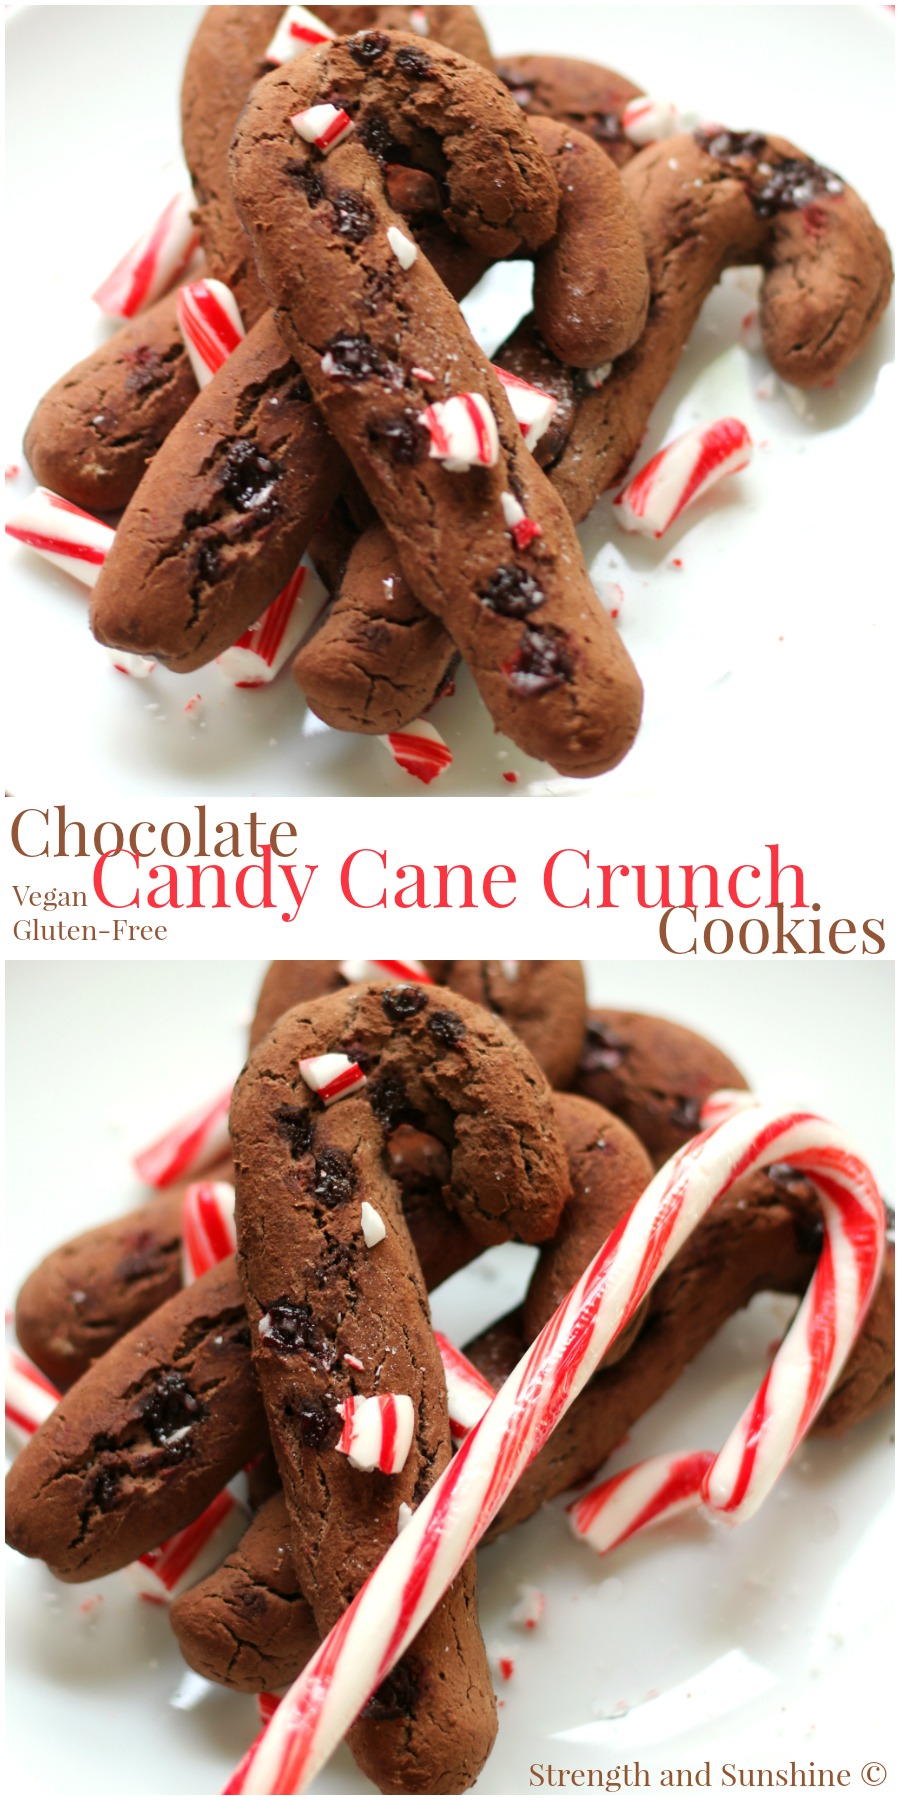 Chocolate Candy Cane Crunch Cookies | Strength and Sunshine @RebeccaGF666 Naughty or nice, baking these cookies will put you on the nice list! Chocolate Candy Cane Crunch Cookies to celebrate the season! Gluten-free and vegan, healthy and delicious, the perfect chocolate and peppermint holiday cookie dessert recipe for kids of all ages!